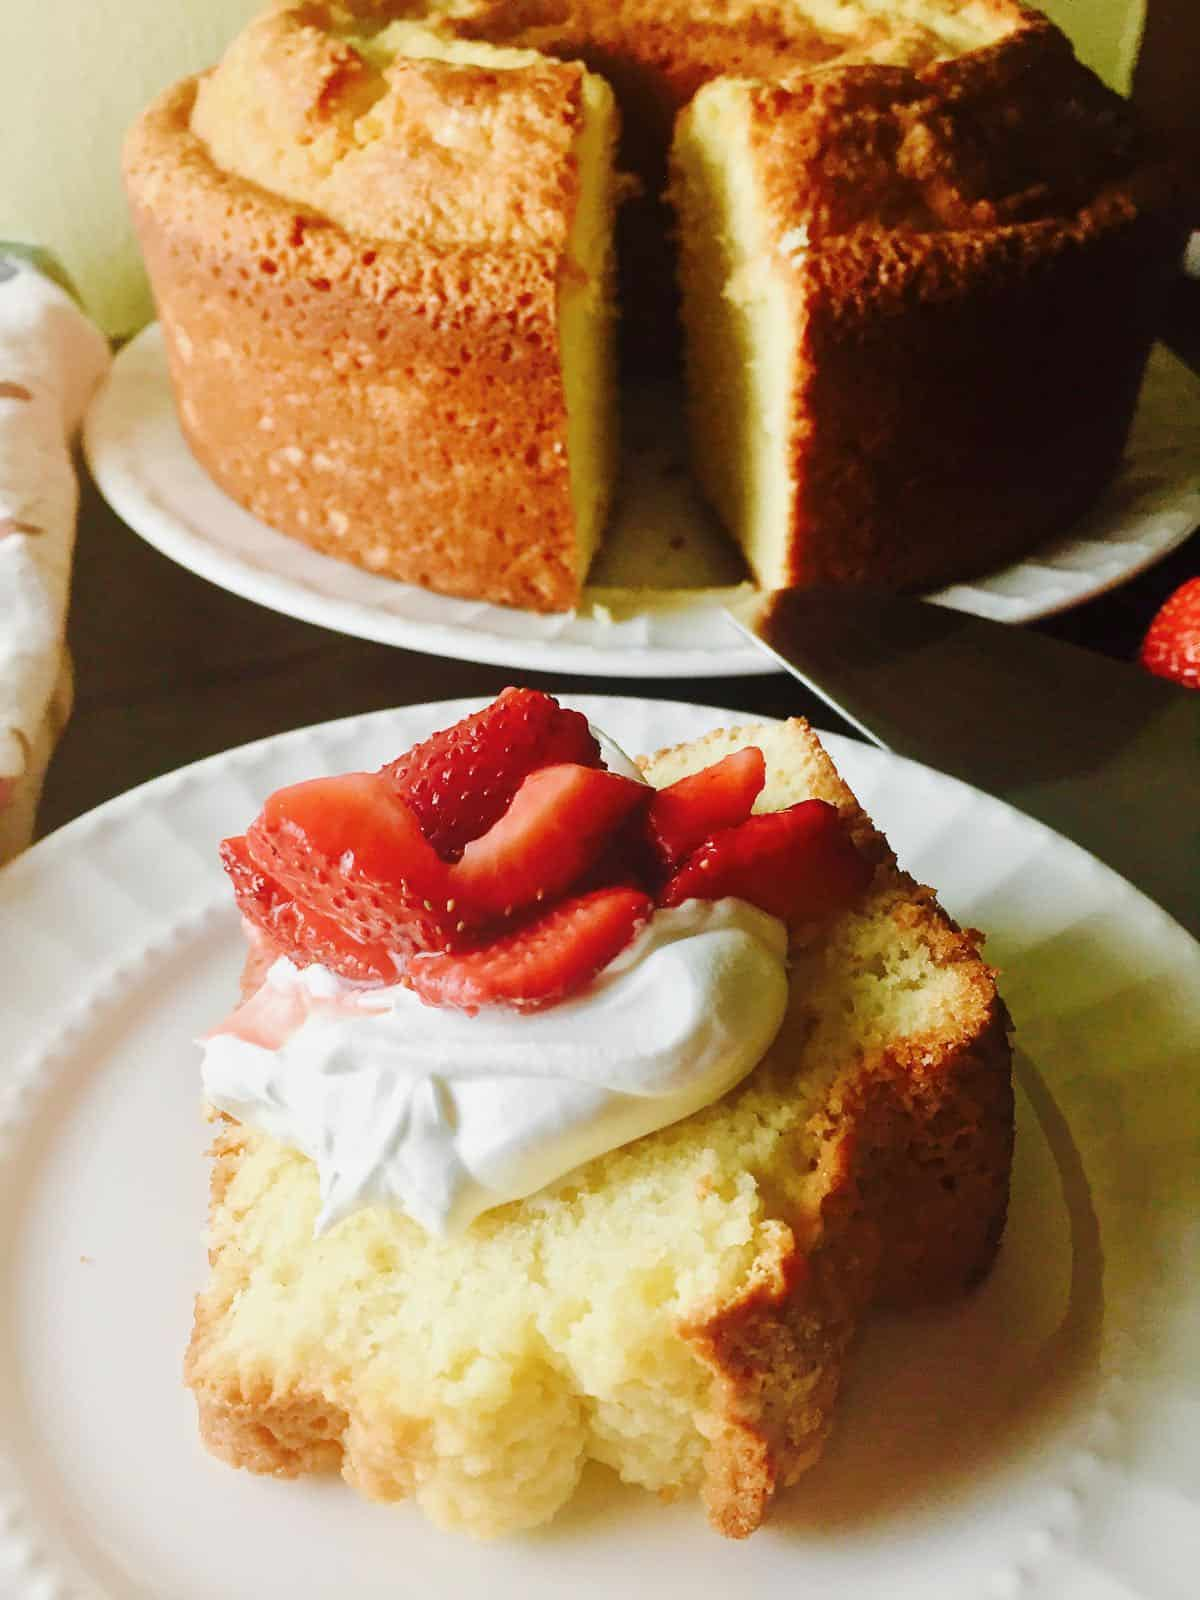 A large pound cake in the background with a slice cut out. The slice is topped with whipped cream and sliced strawberries.